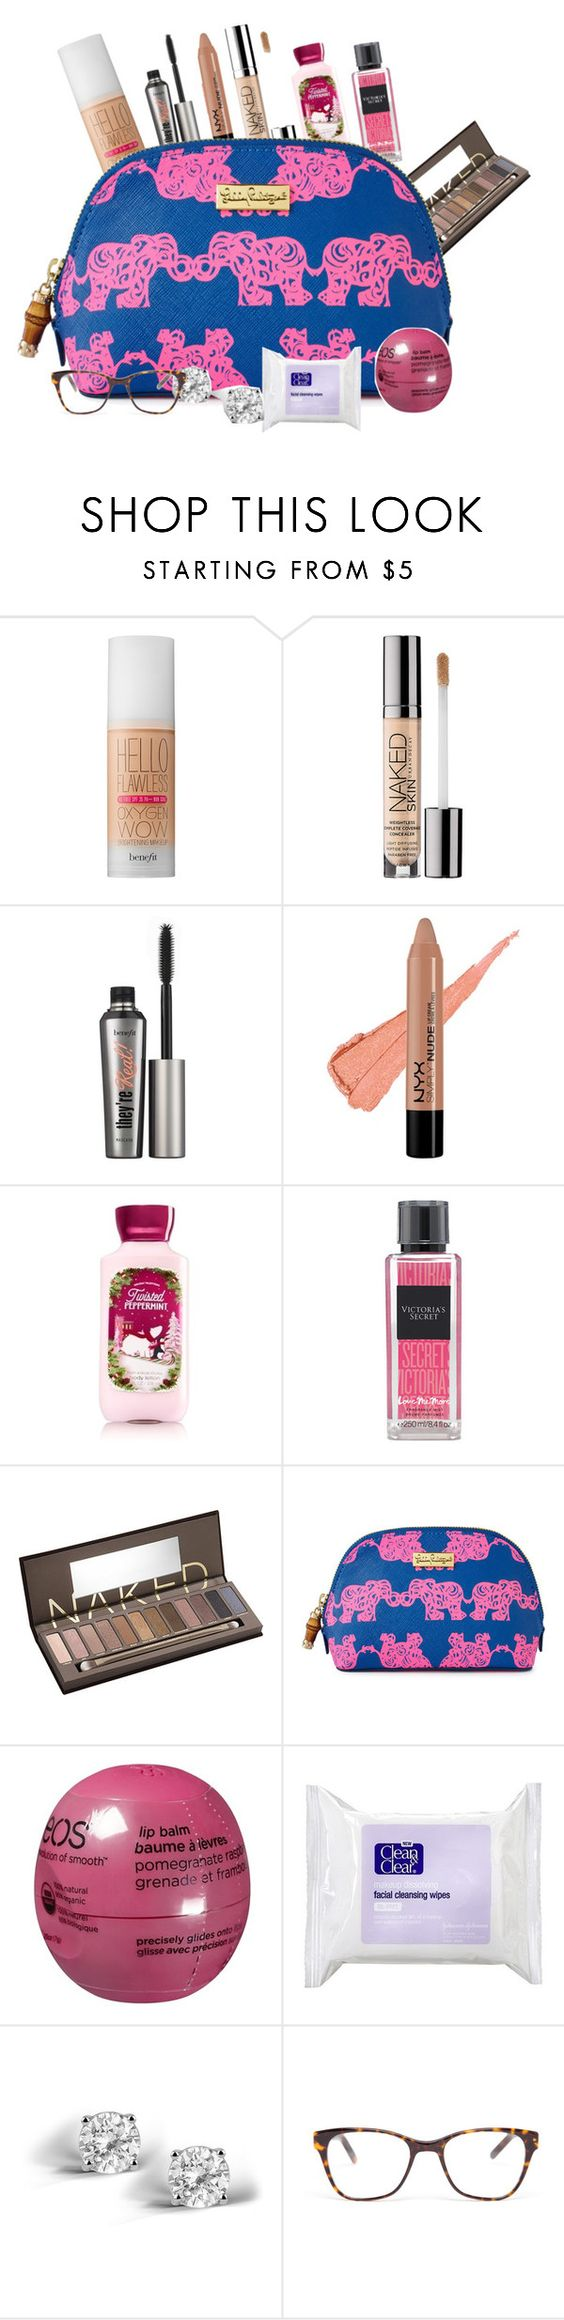 """""""Beauty bag"""" by jackelinhernandez ❤ liked on Polyvore featuring moda, Benefit, Urban Decay, NYX, Victoria's Secret, Lilly Pulitzer, Eos, Clean & Clear, Glitzy Rocks y Prism"""